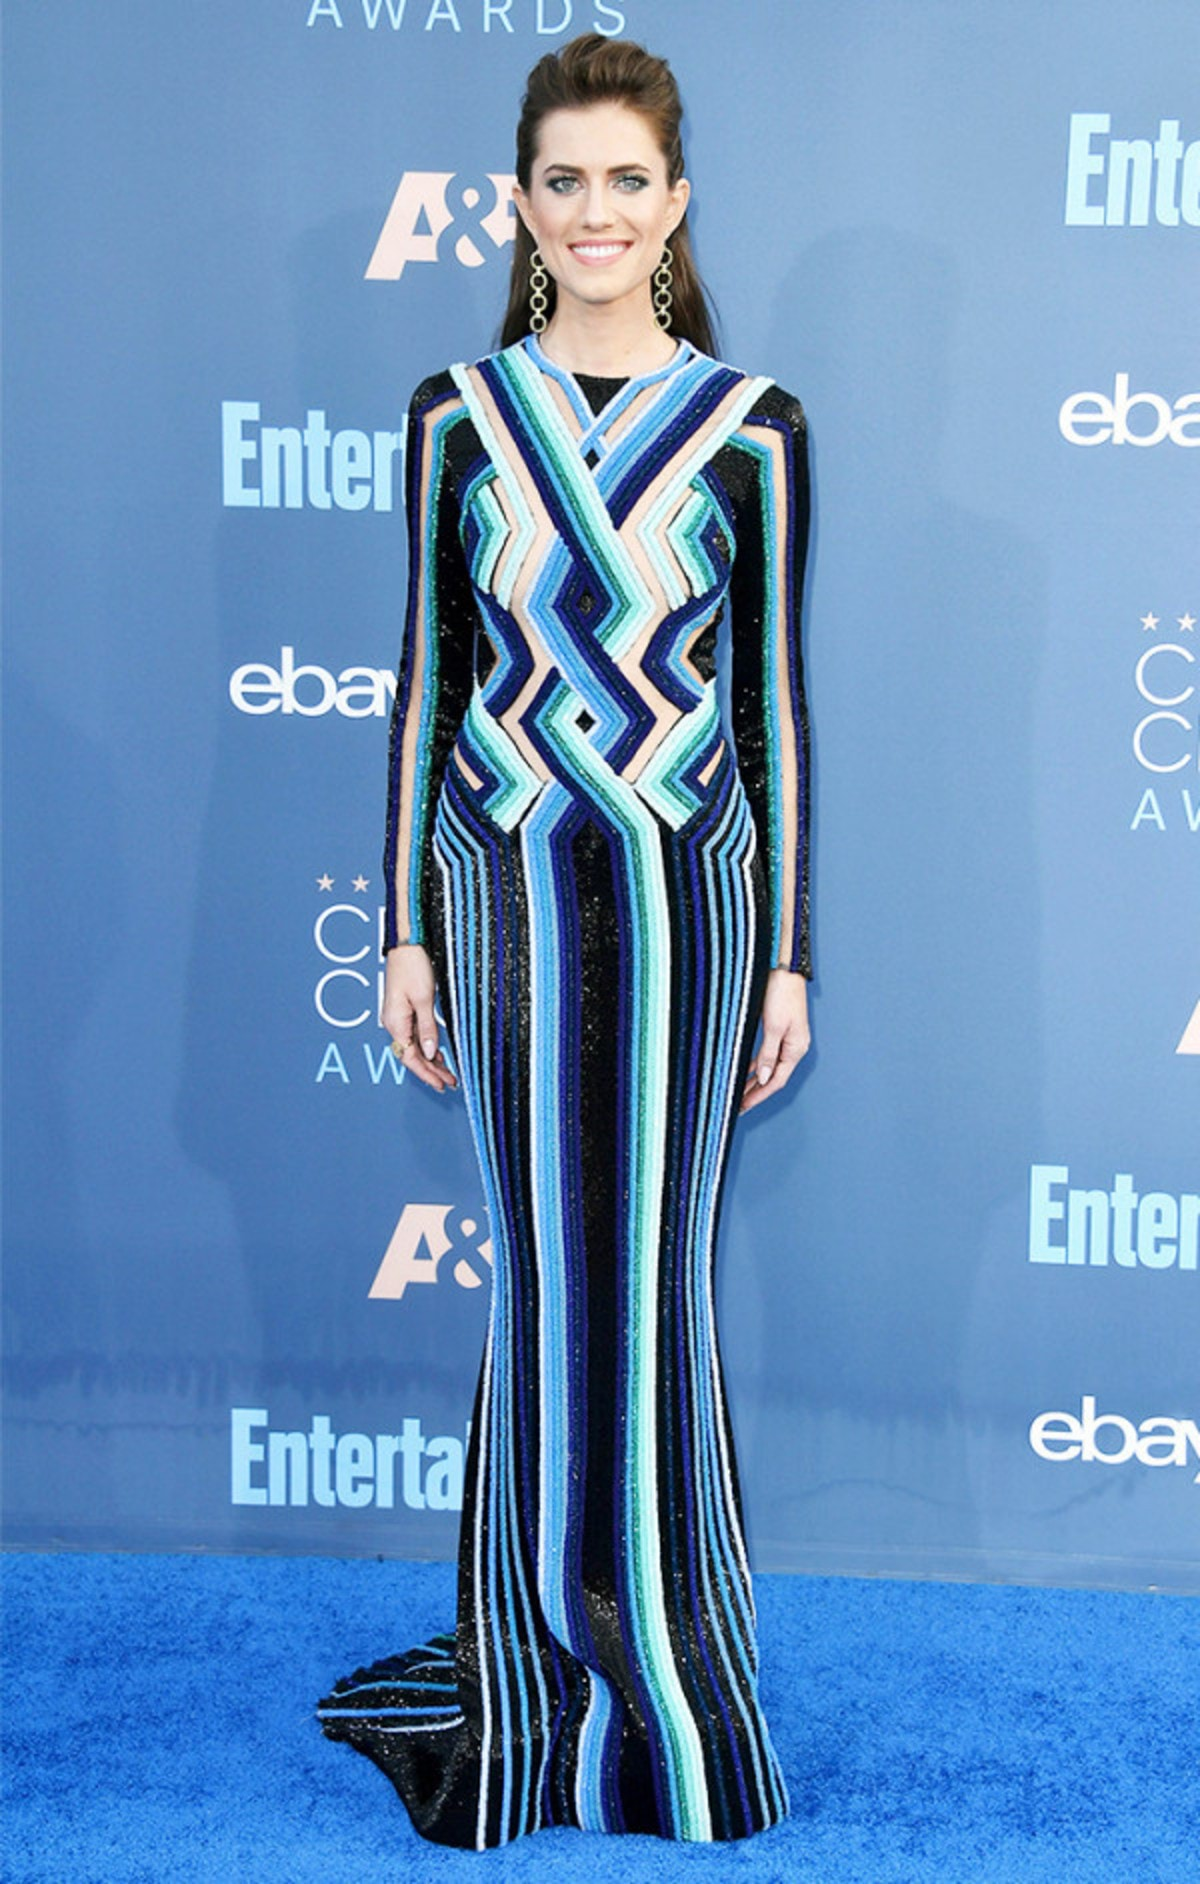 the-best-red-carpet-looks-from-the-critics-choice-awards-2075071.600x0c